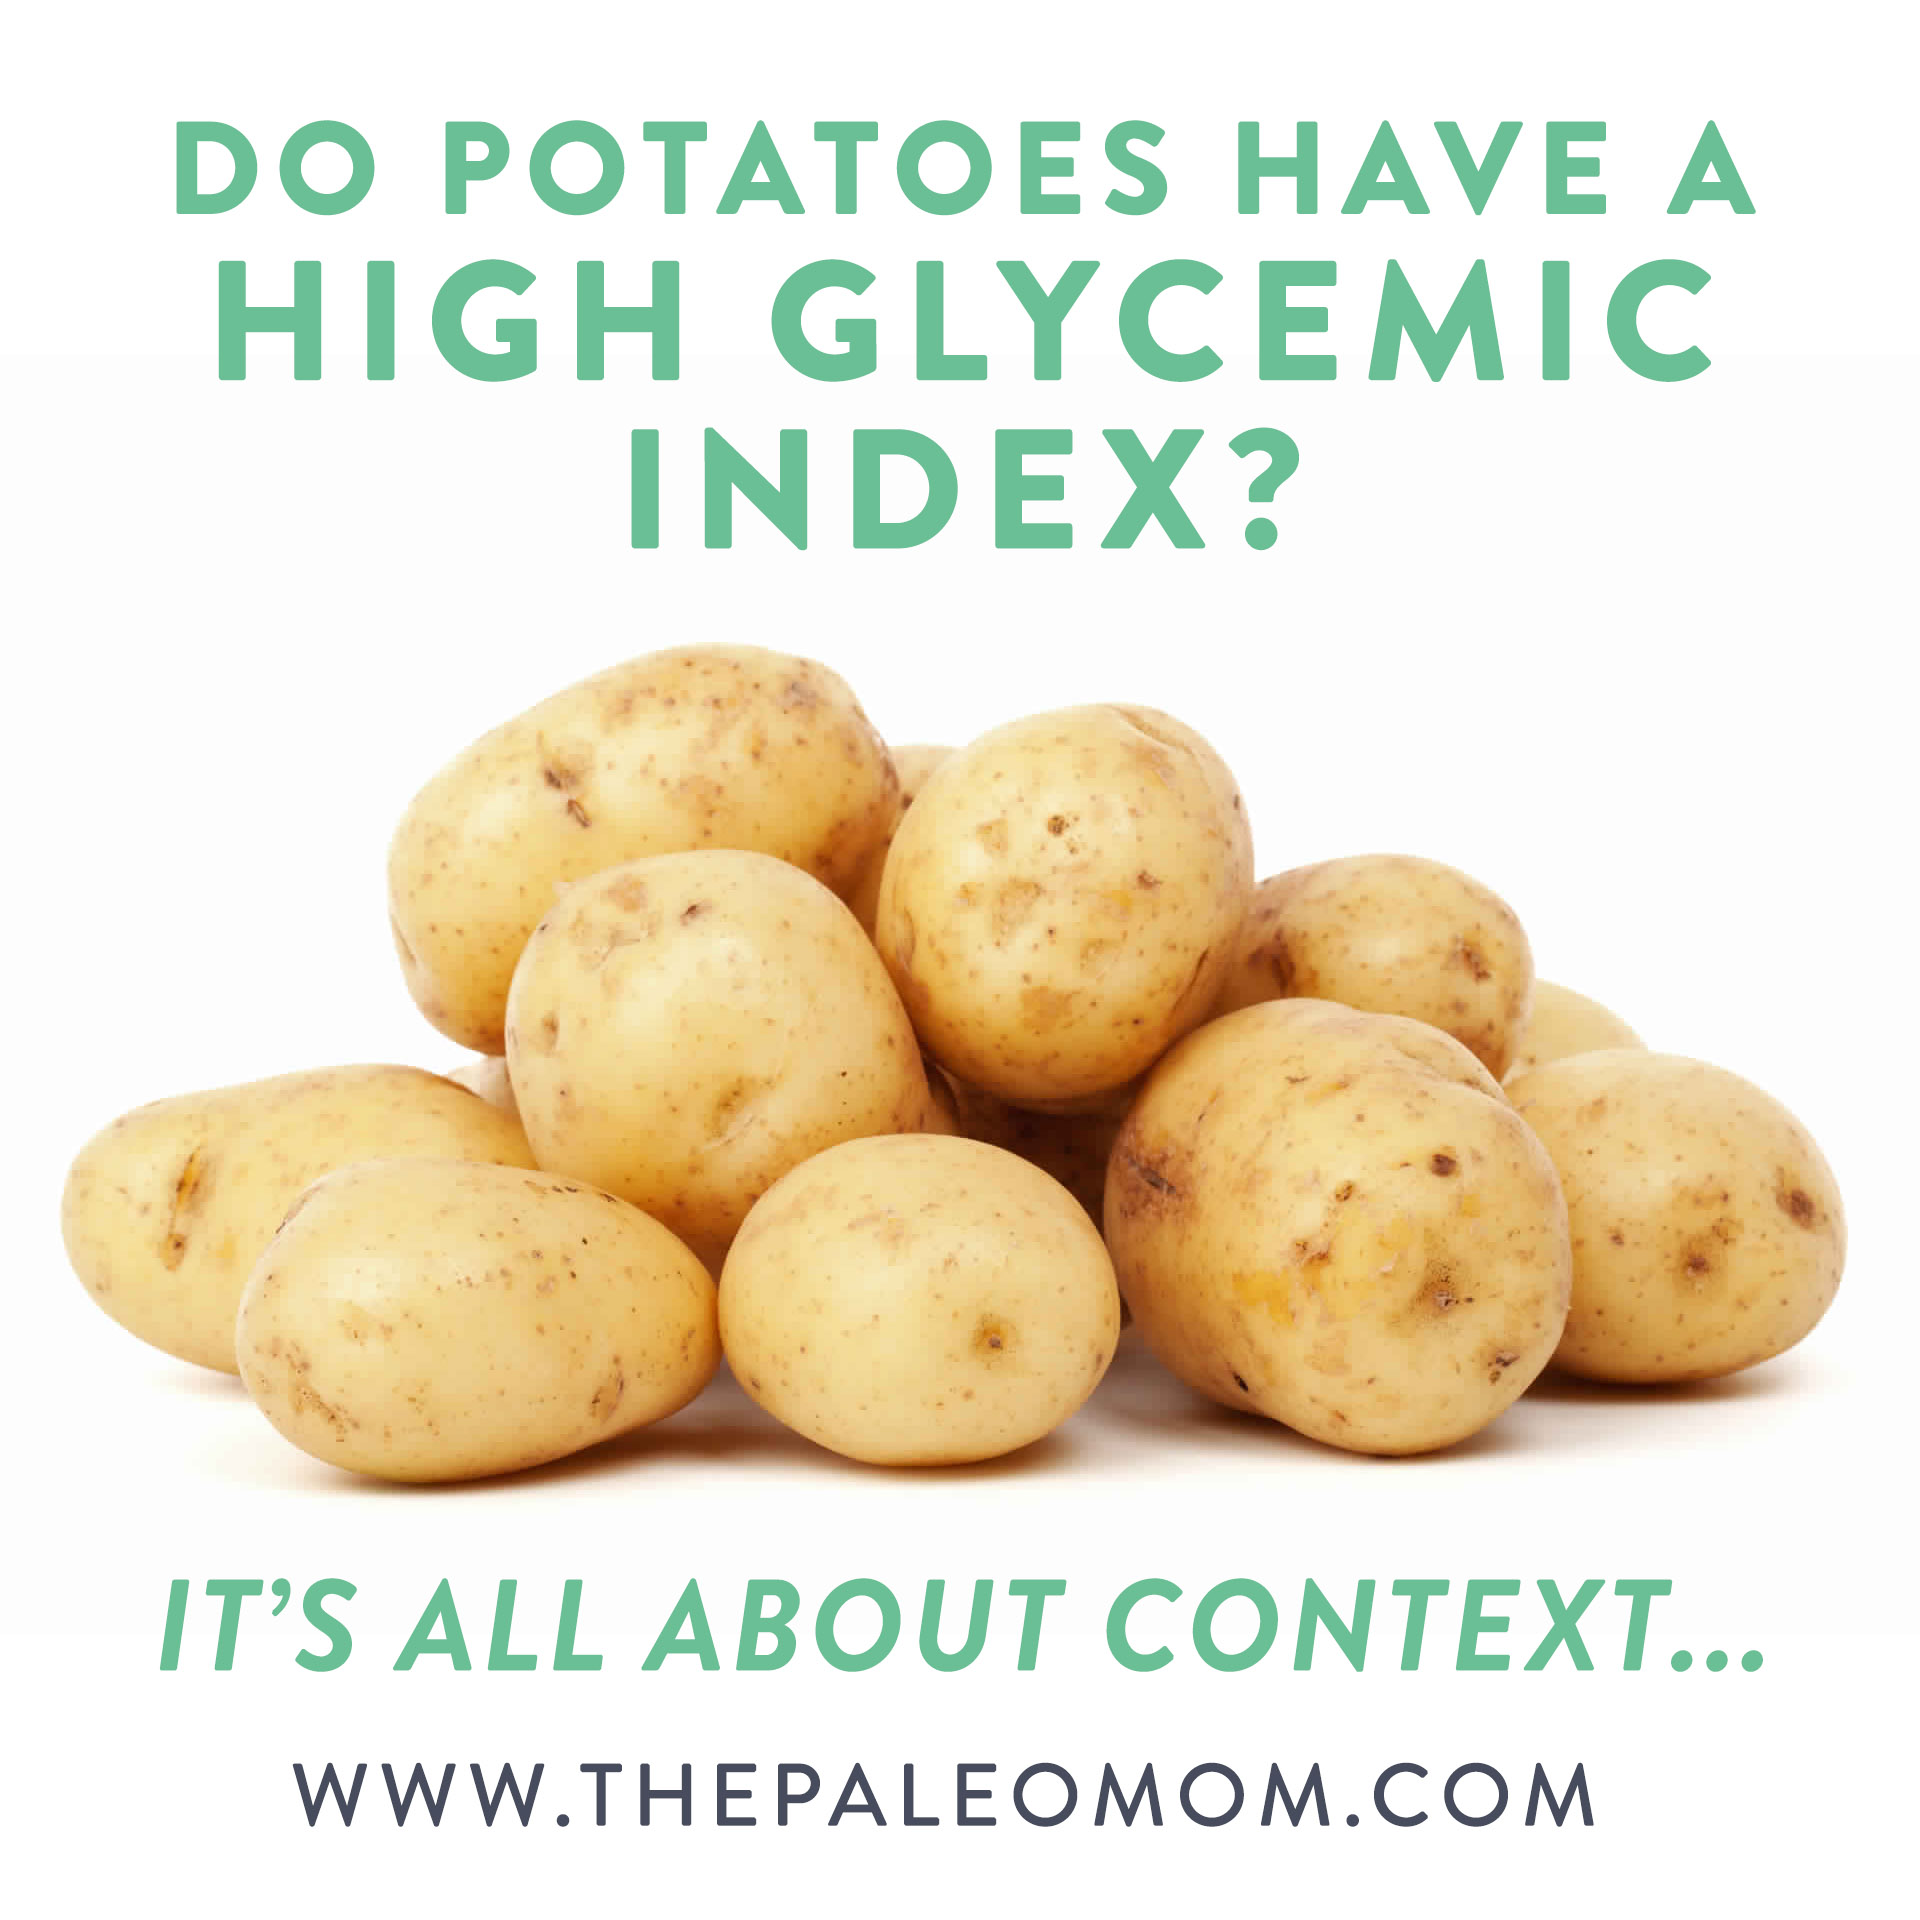 Why Do Potatoes Have a Higher Glycemic Index Than Sugar